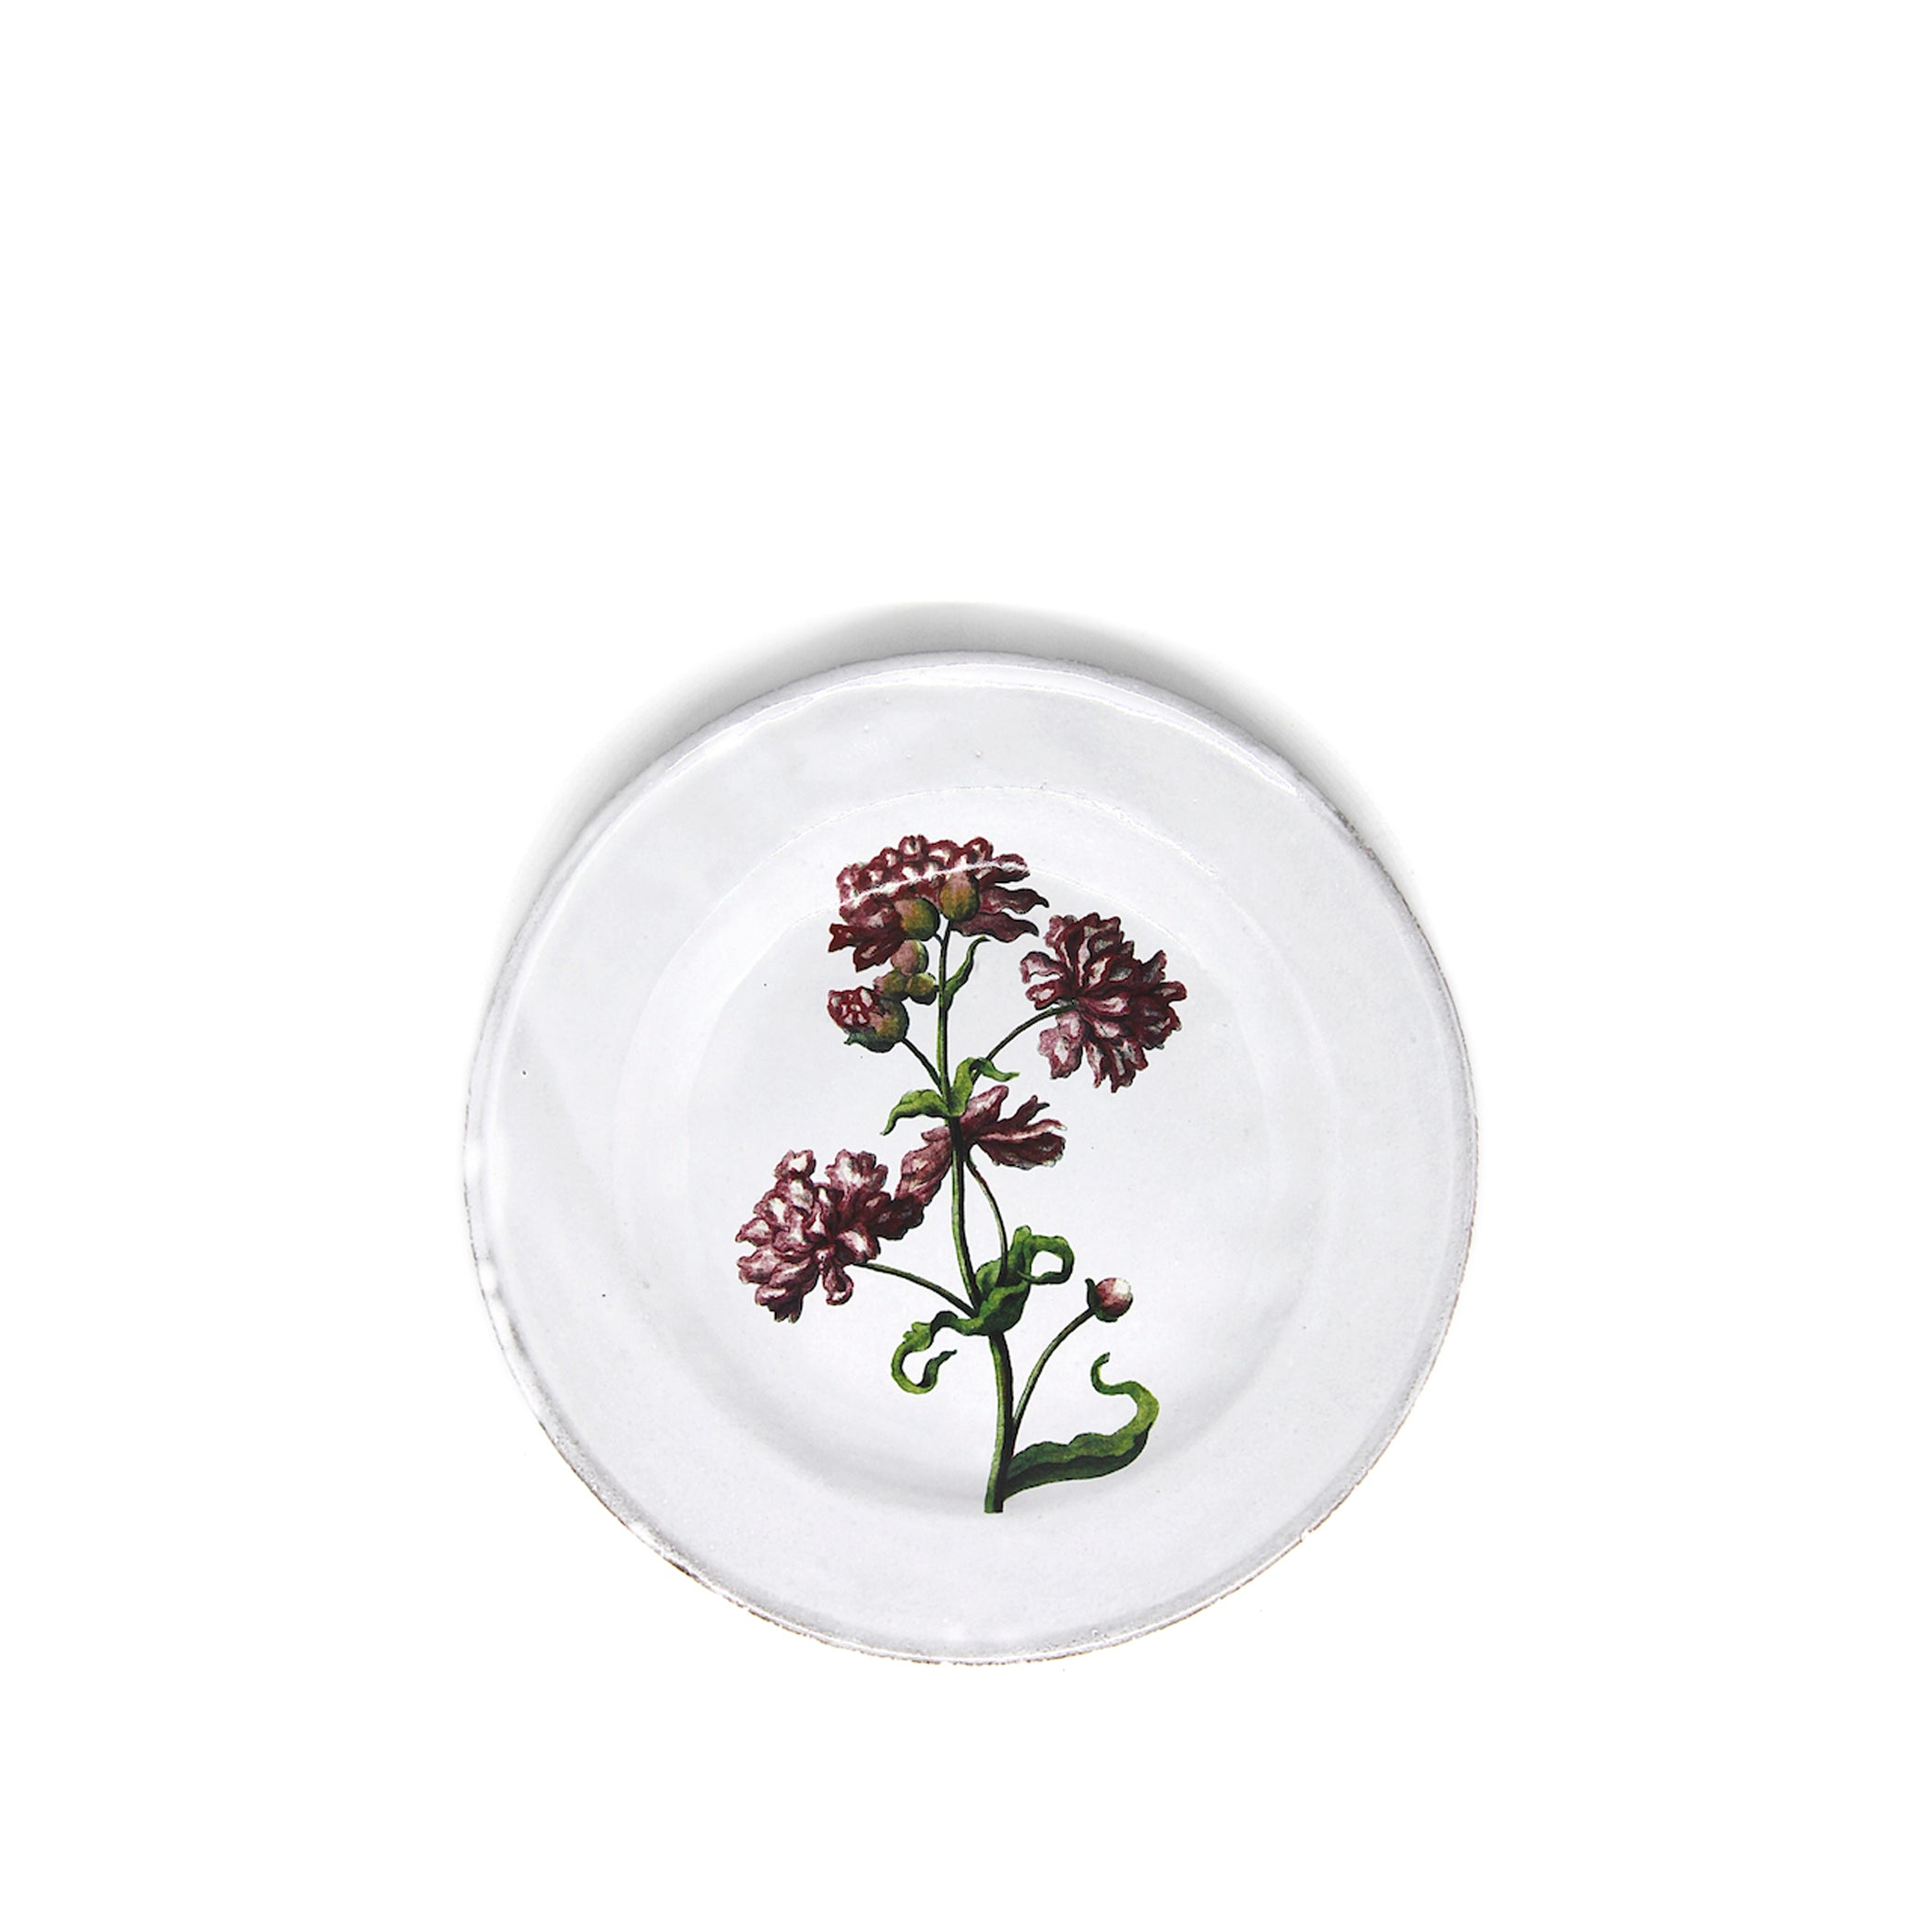 Double Catch Fly Plate by Astier de Villatte